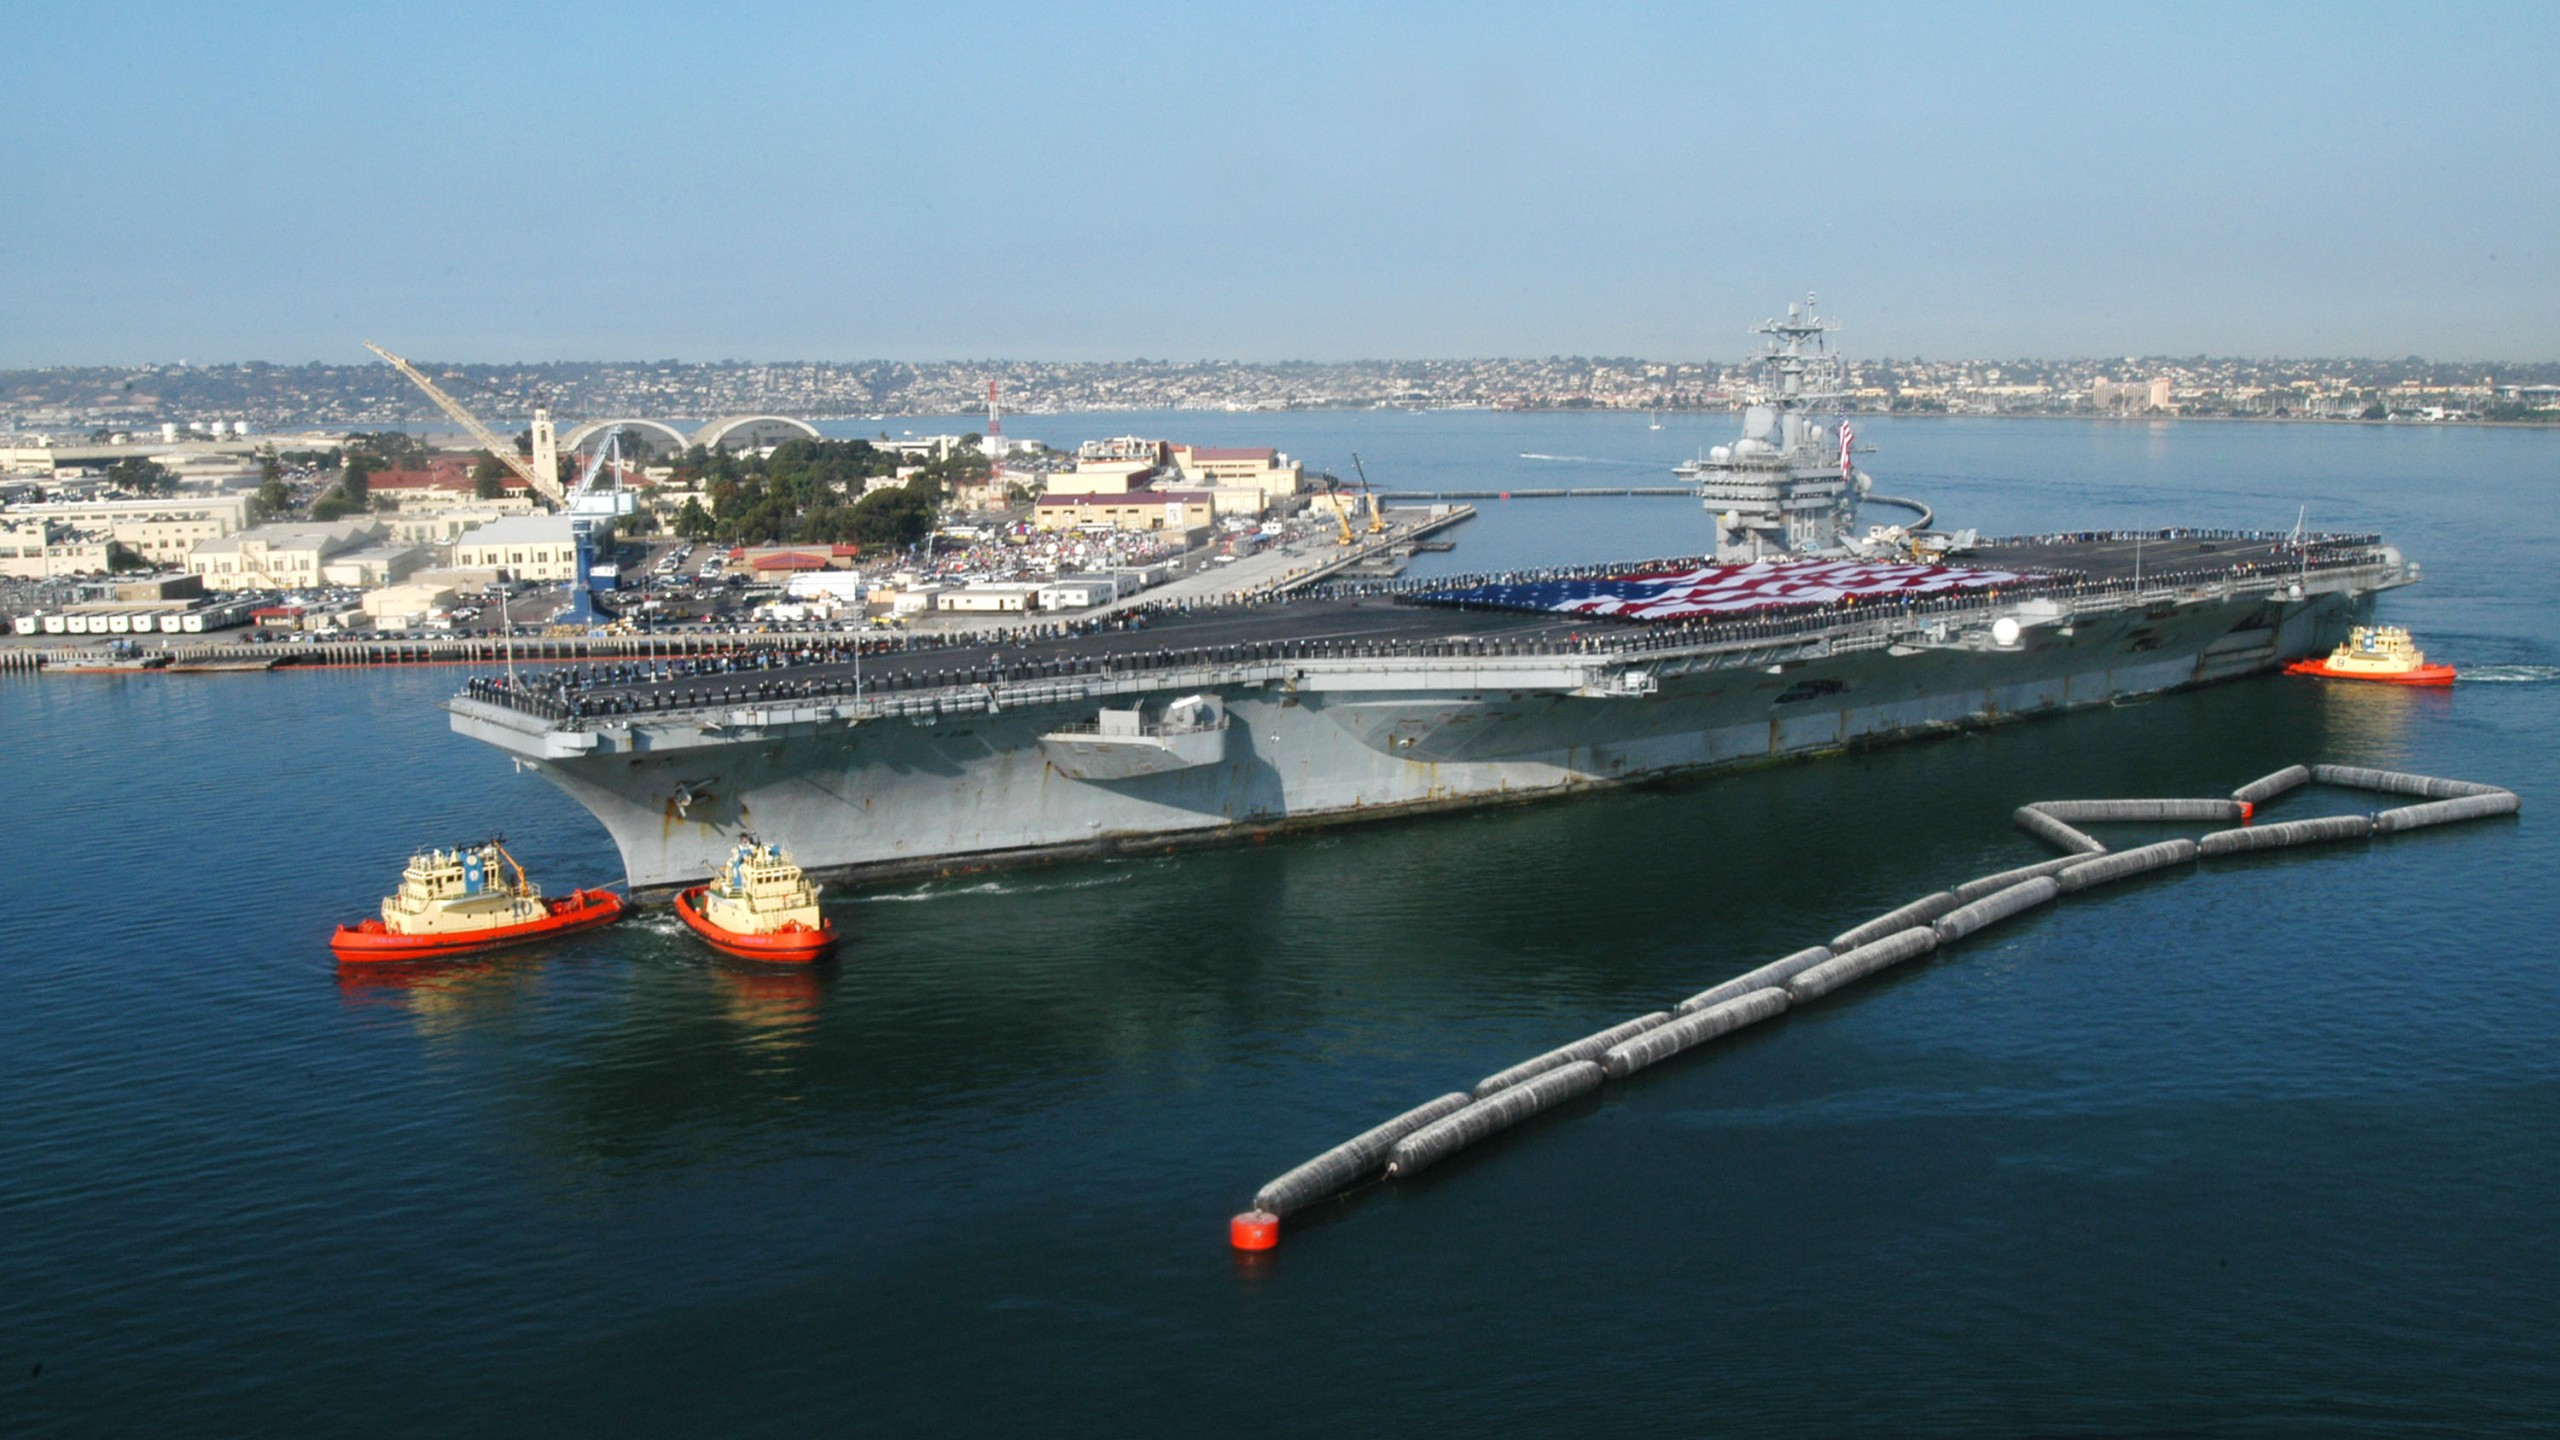 In this U.S. Navy handout, the USS Nimitz arrives in her homeport at Naval Air Station North Island November 5, 2003 in Coronado, California.